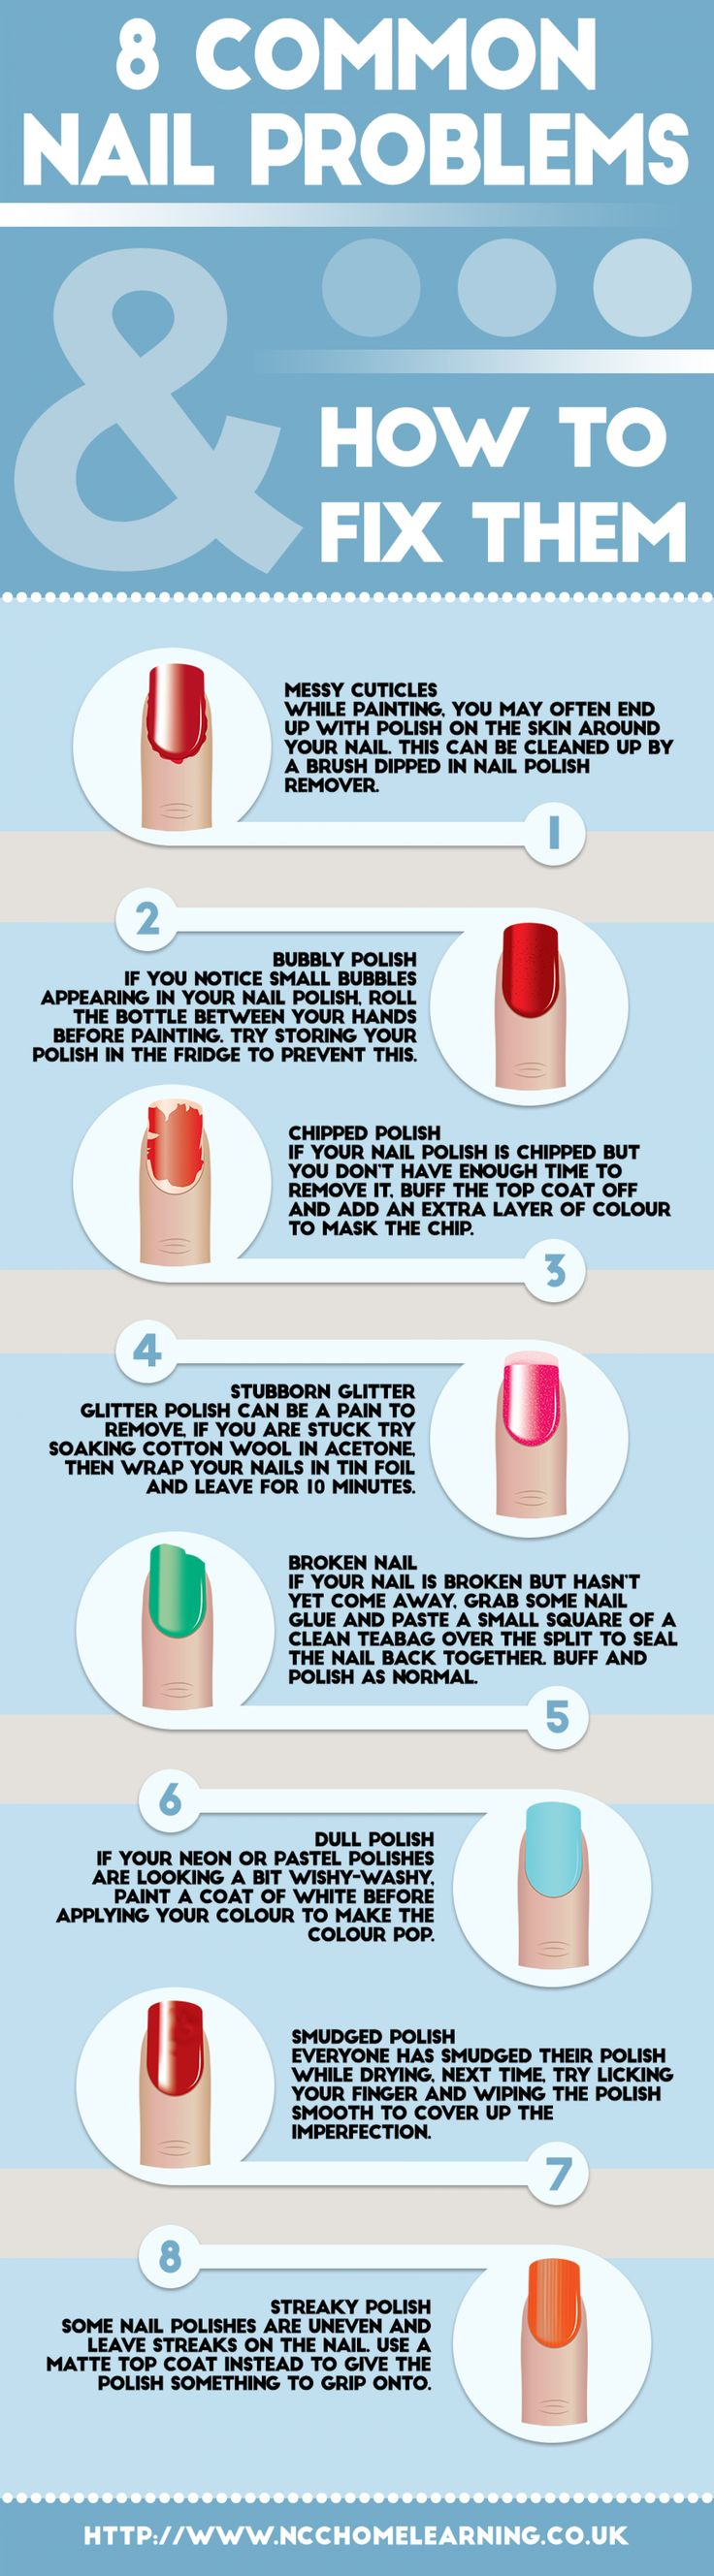 8 Common Nail Problems & How to Fix Them Infographic